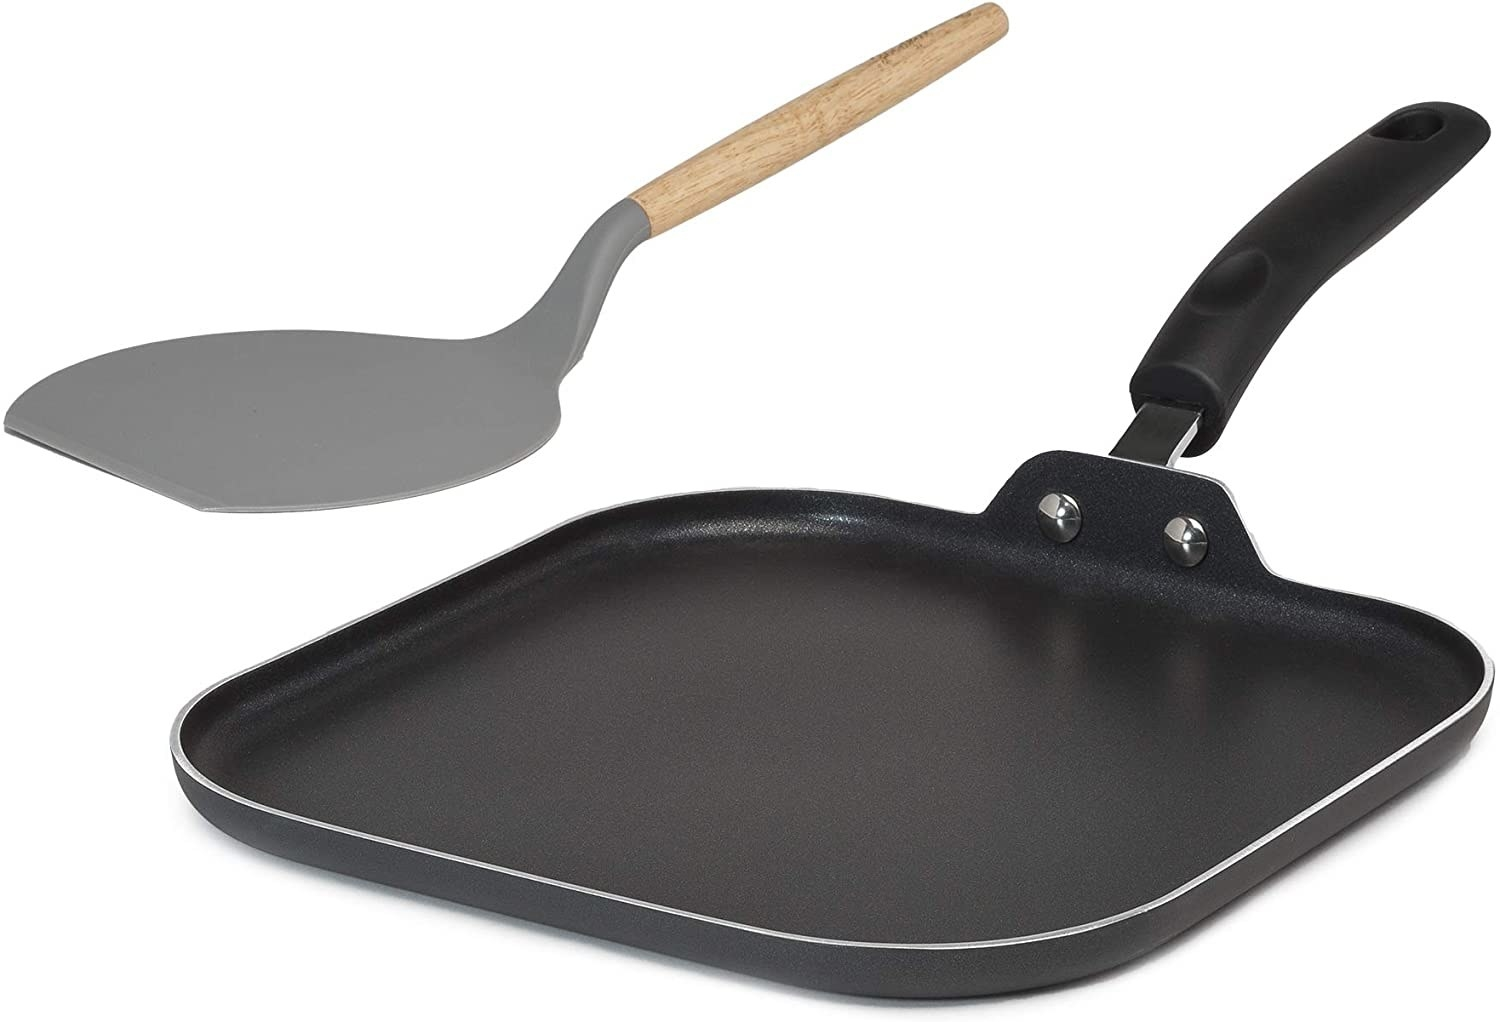 The pan and flipper